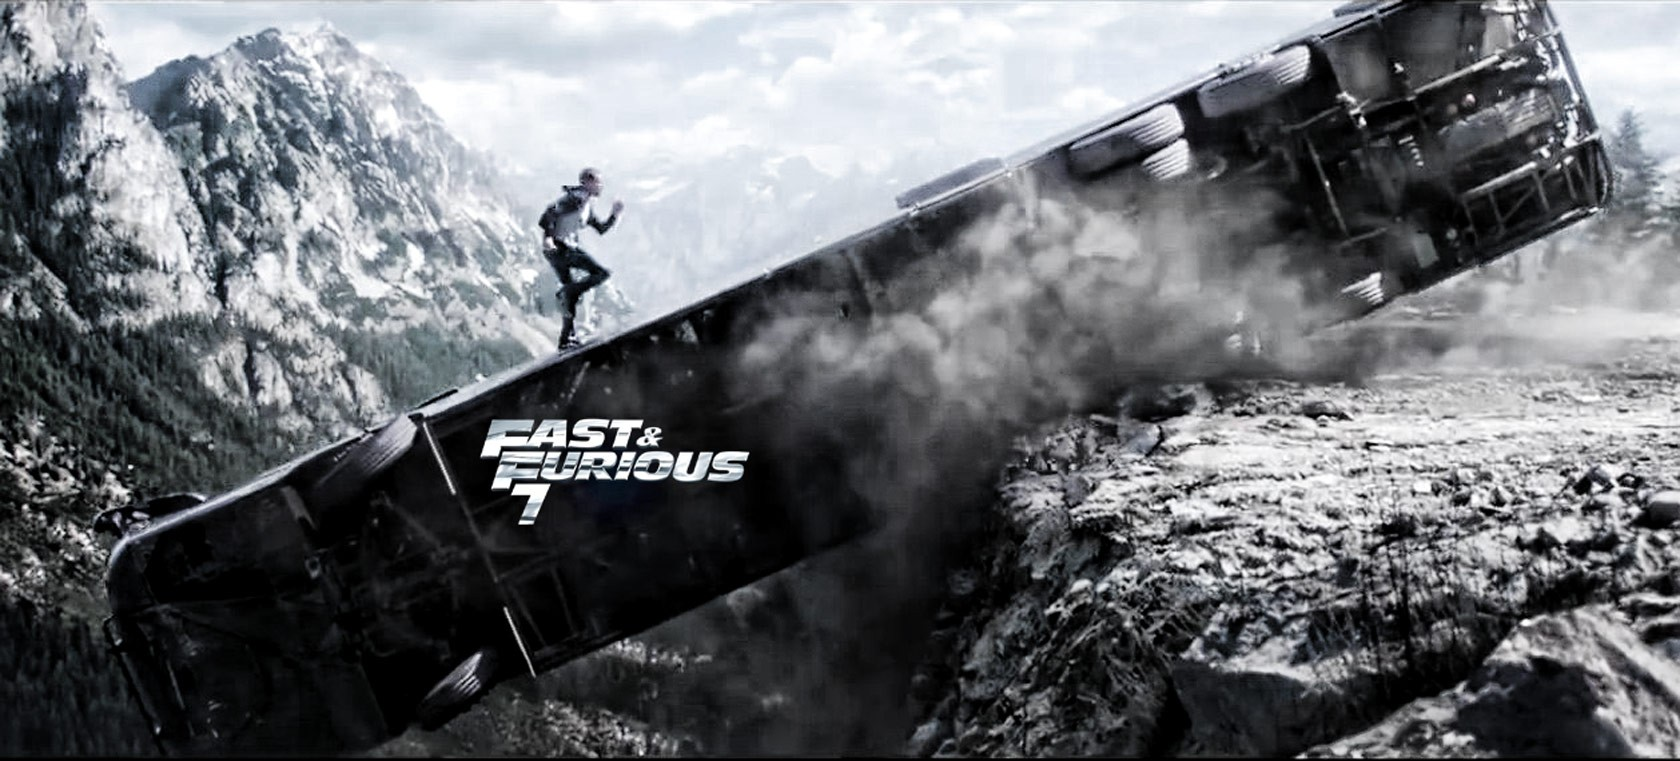 Fast-And-Furious-7-Movie-Action-Trailer-HD-Wallpaper